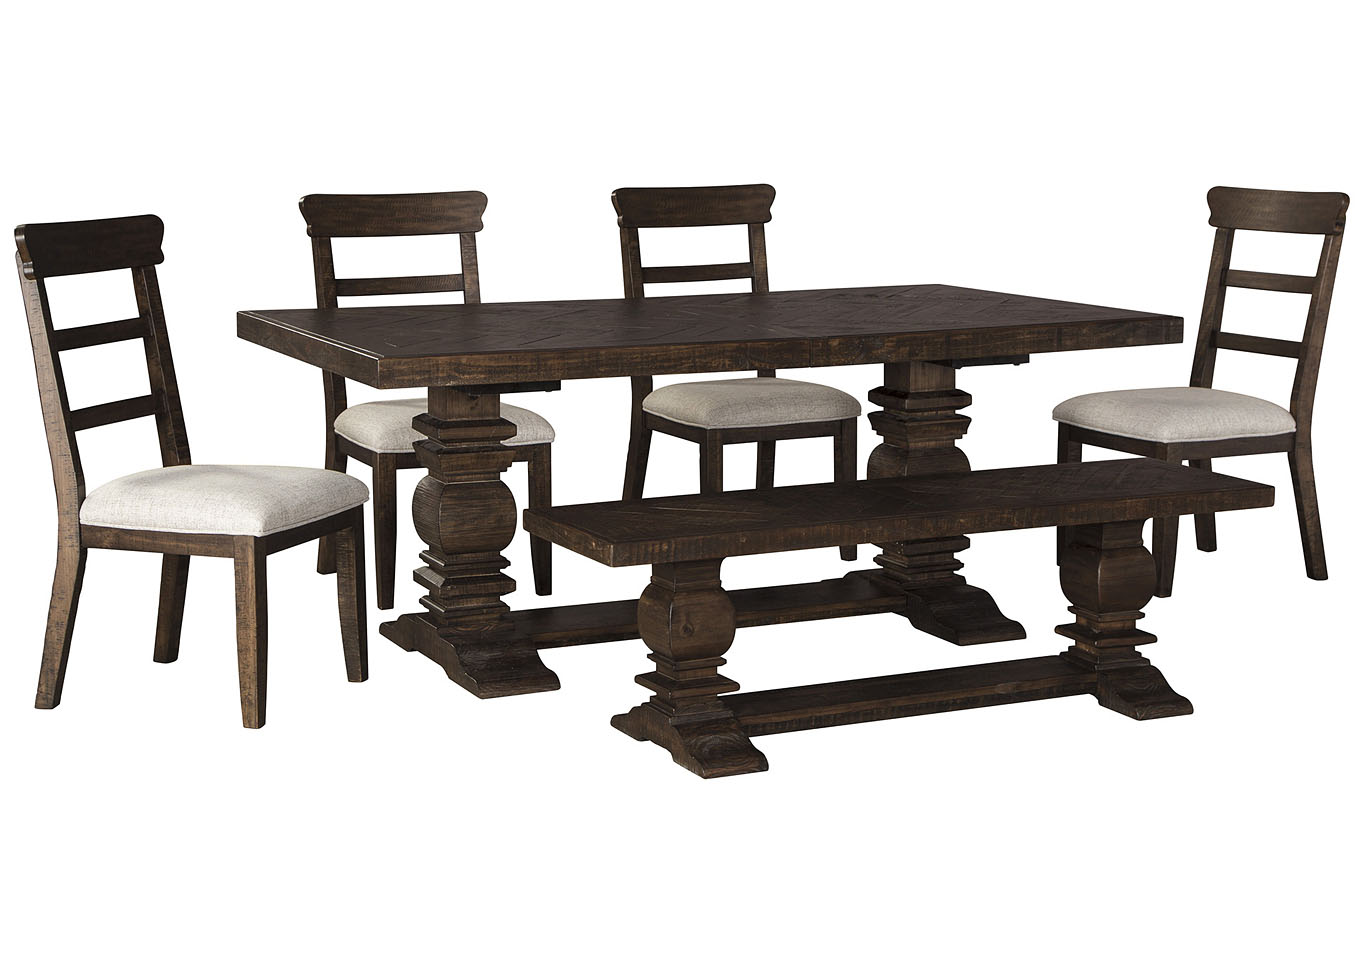 Hillcott Dining Table w/4 Side Chair and Bench